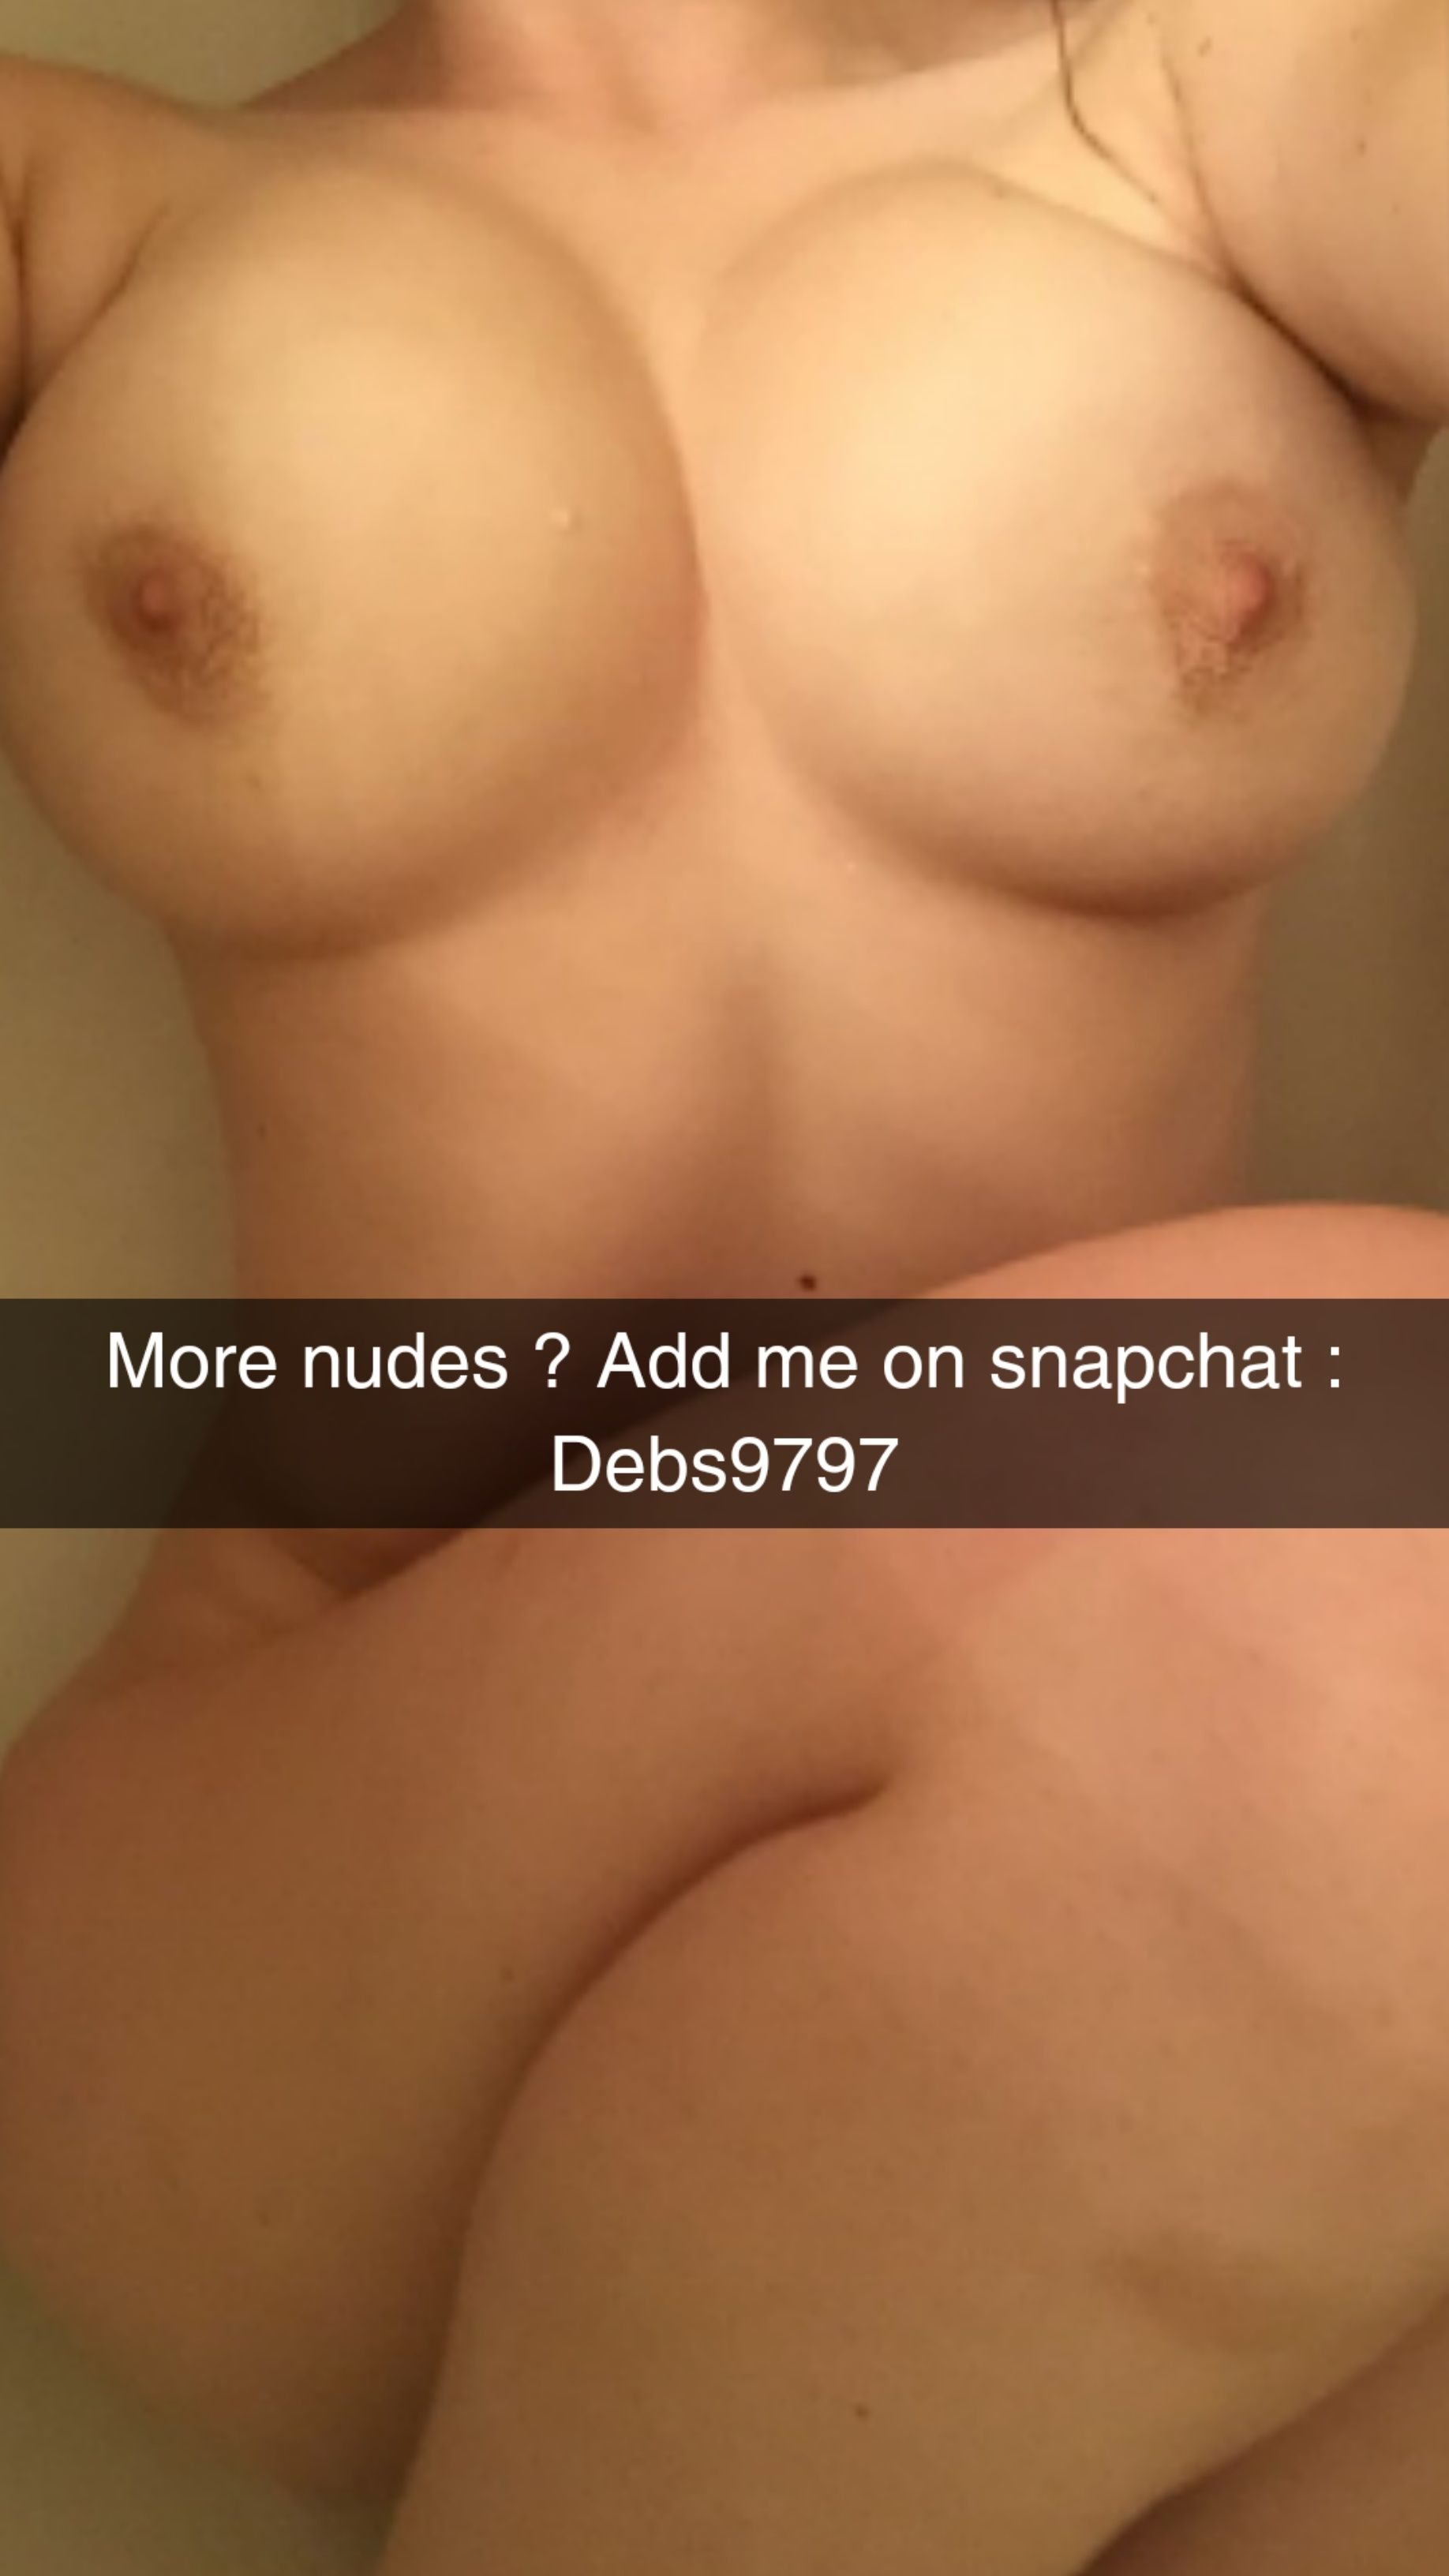 Nude Snapchats To Add photo 10